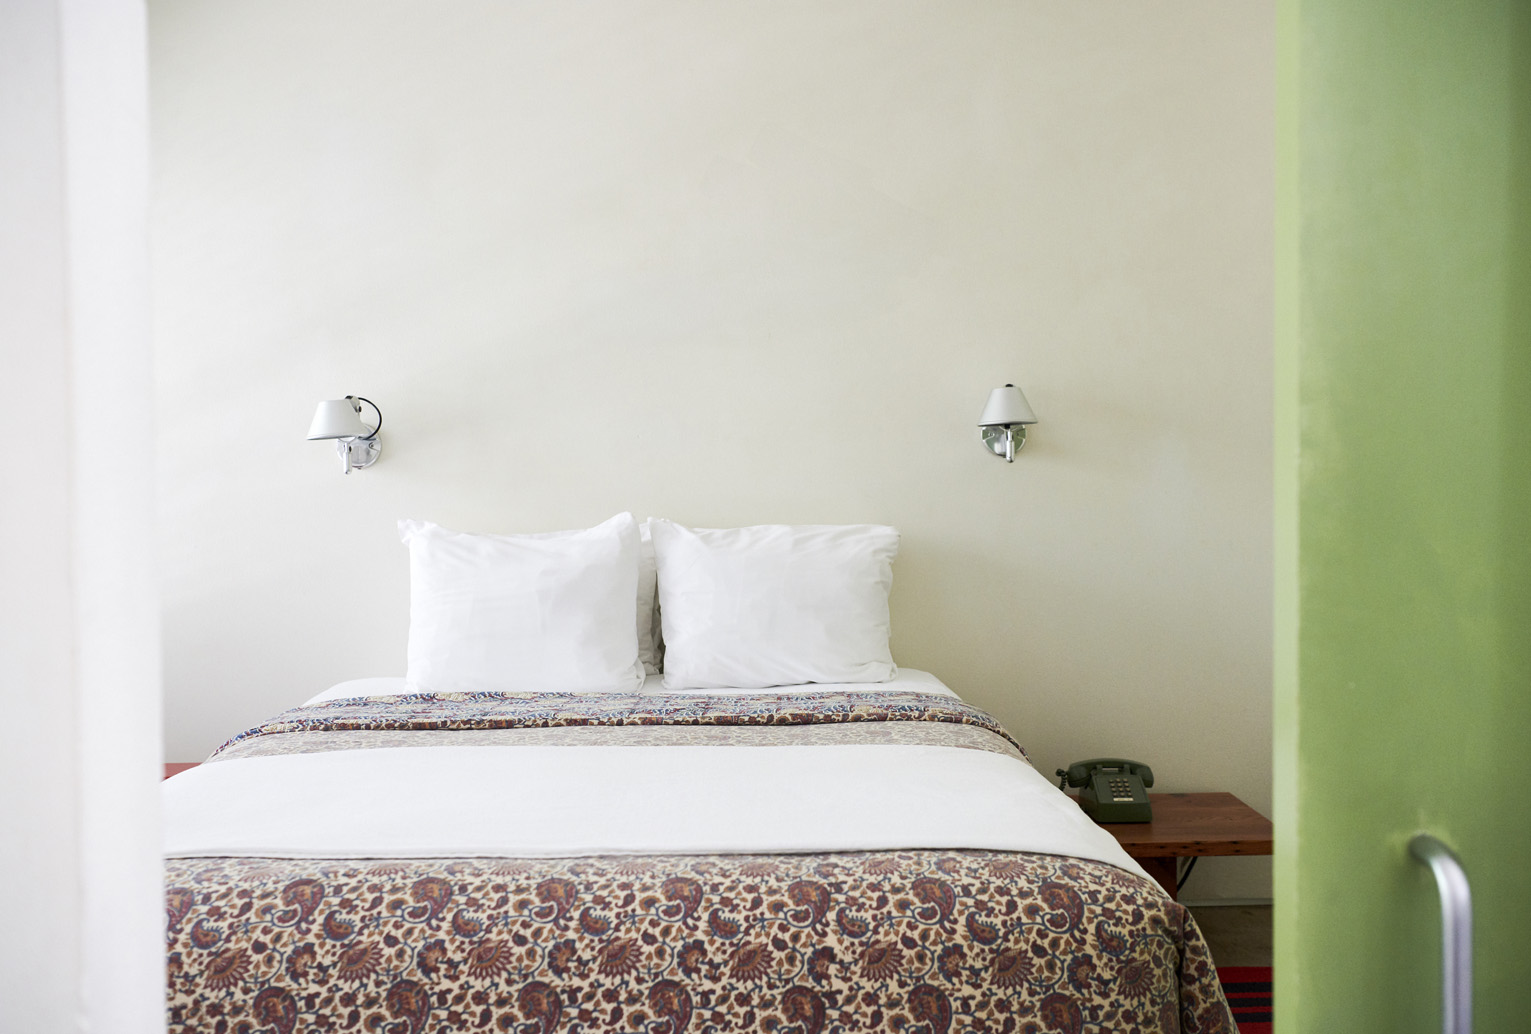 A large bed with patterned sheets next to a bright green door